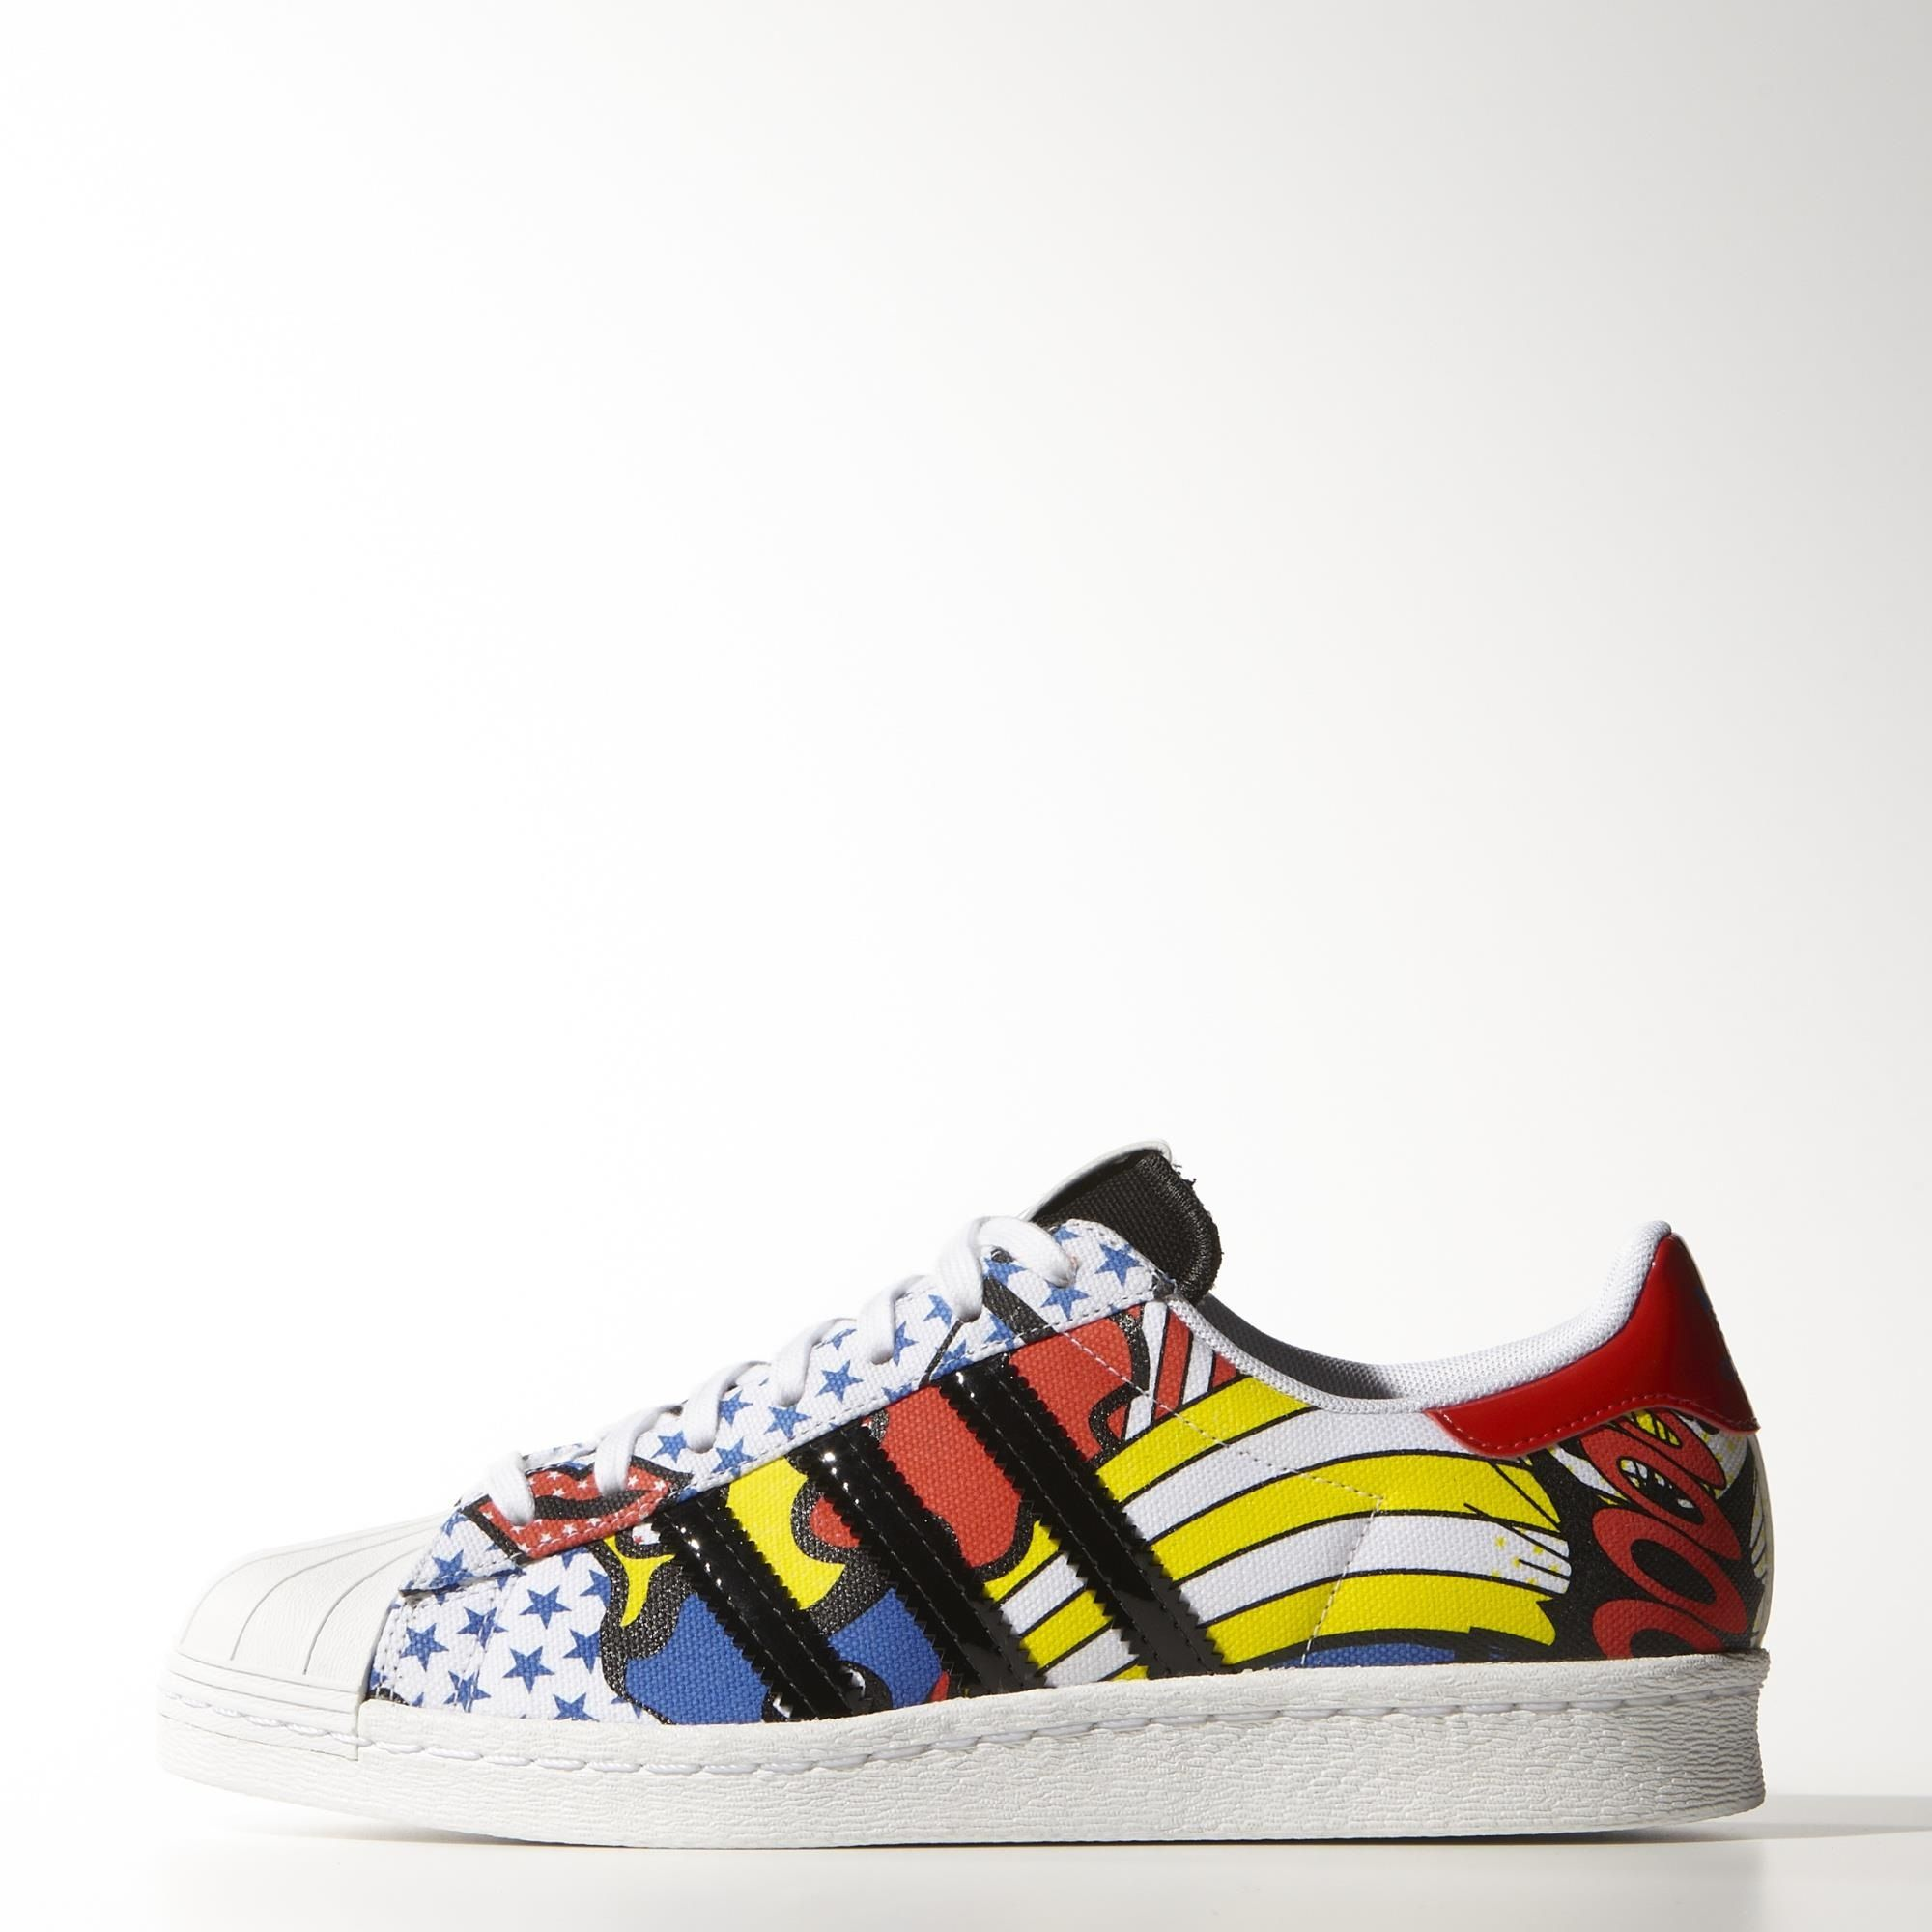 3d57afd749444 A design collaboration with the British pop star and style icon, these Rita  Ora for adidas Originals Superstar 80s shoes pop off the page with bright  colors ...